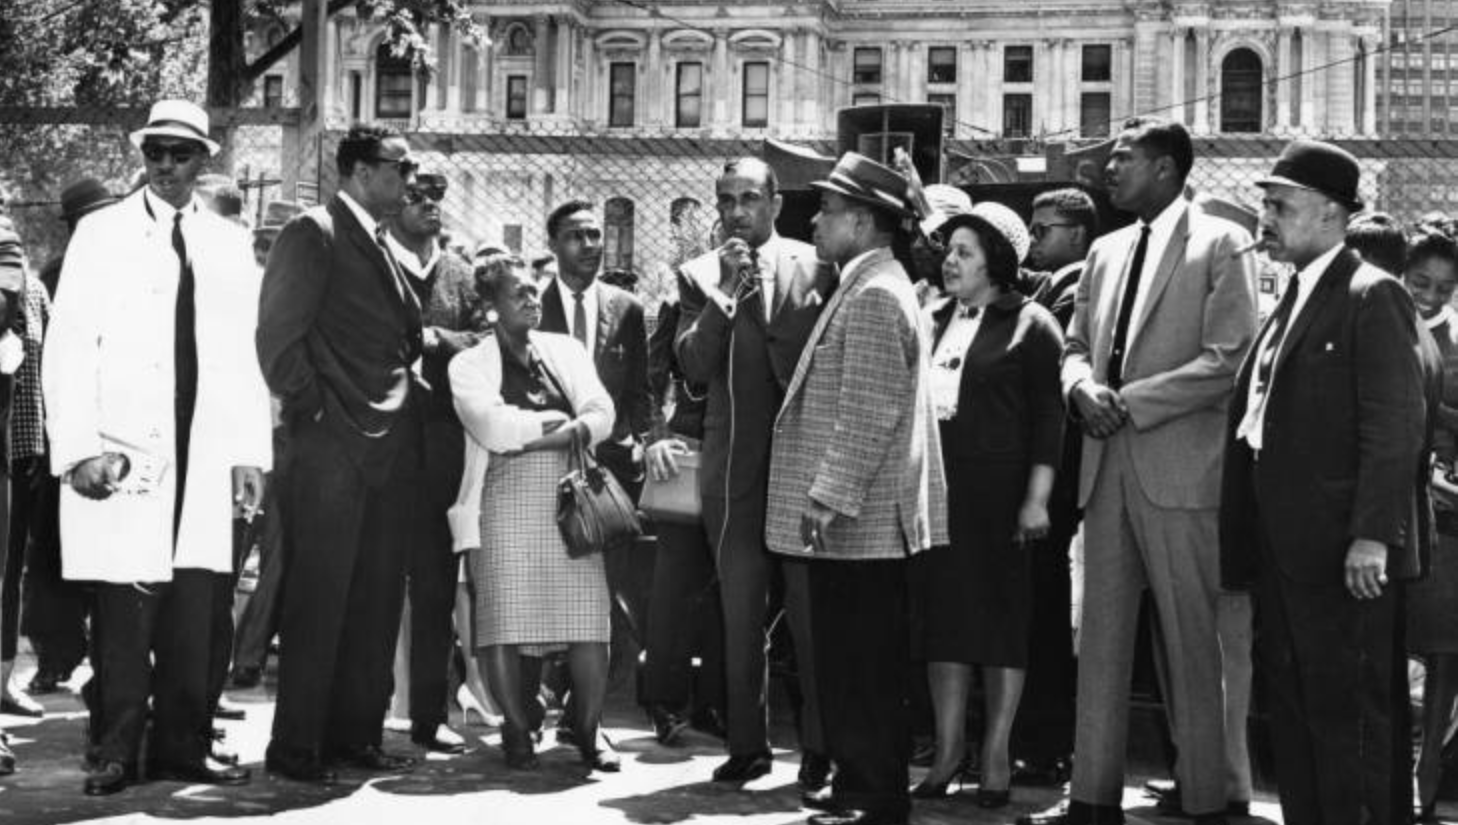 1963: Cecil B. Moore addresses demonstrators at Municipal Services Building site. (Special Collections Research Center, Temple University Libraries, Philadelphia PA)